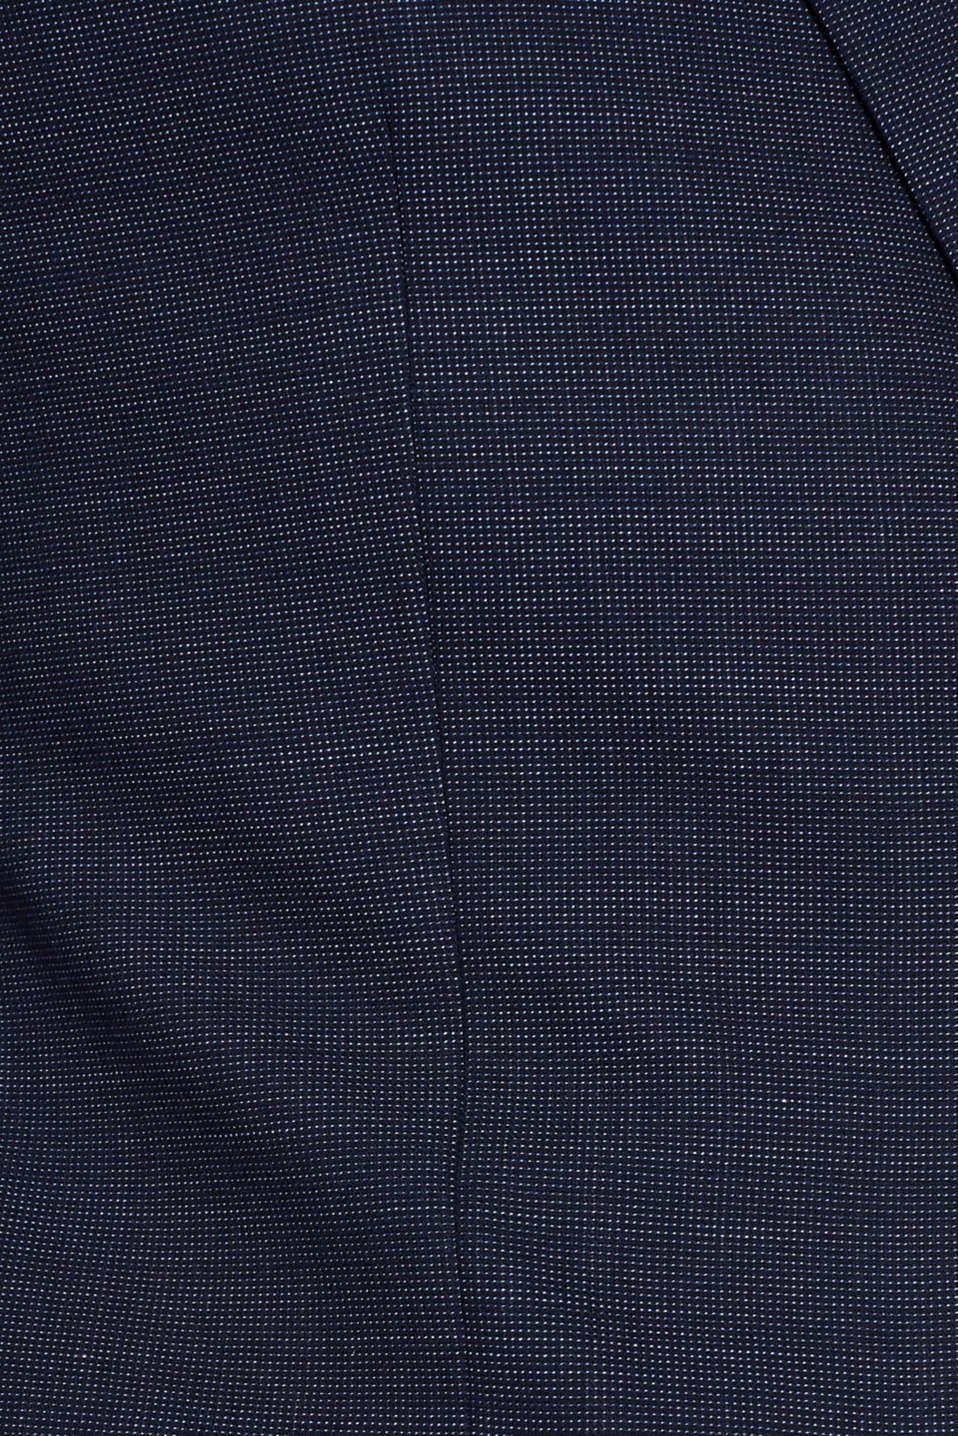 Blazers suit, NAVY, detail image number 4